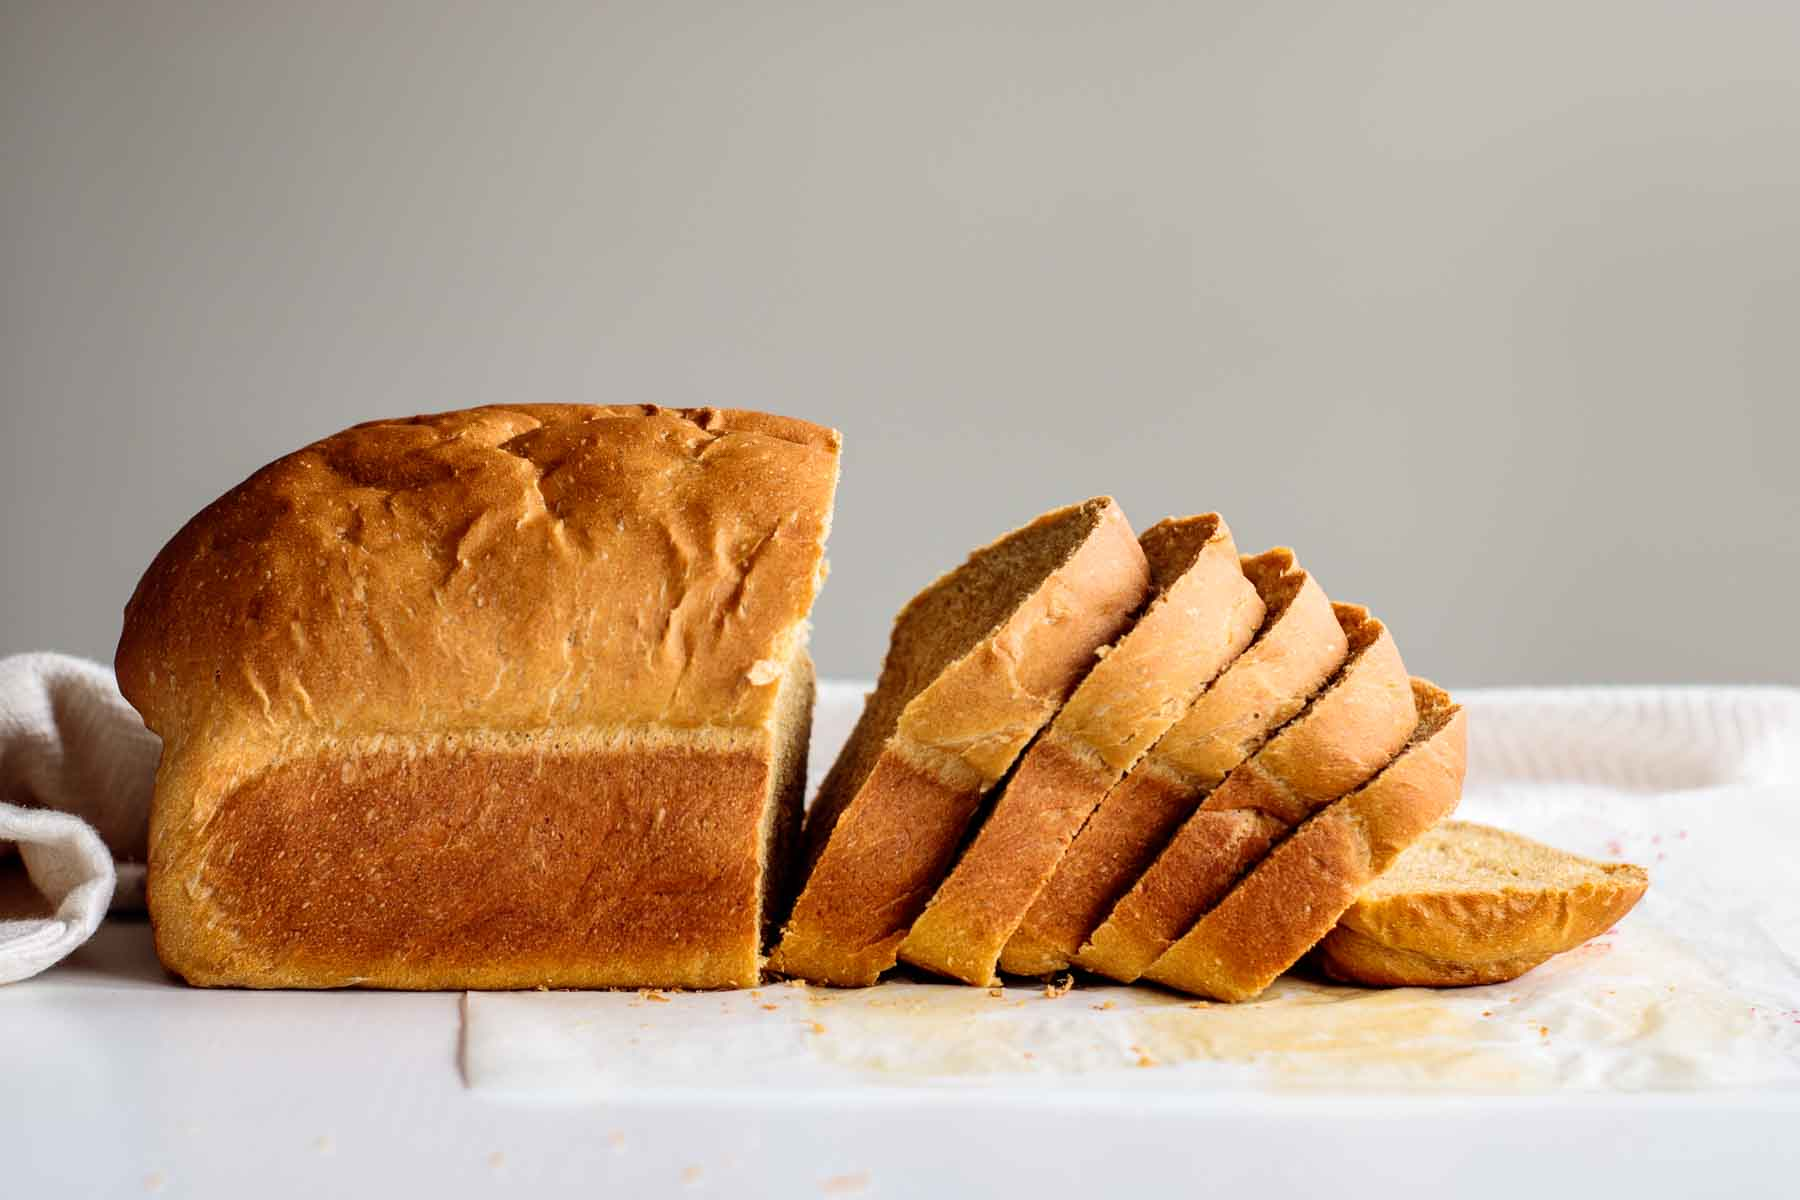 dairy free bread sliced, on top of a white table